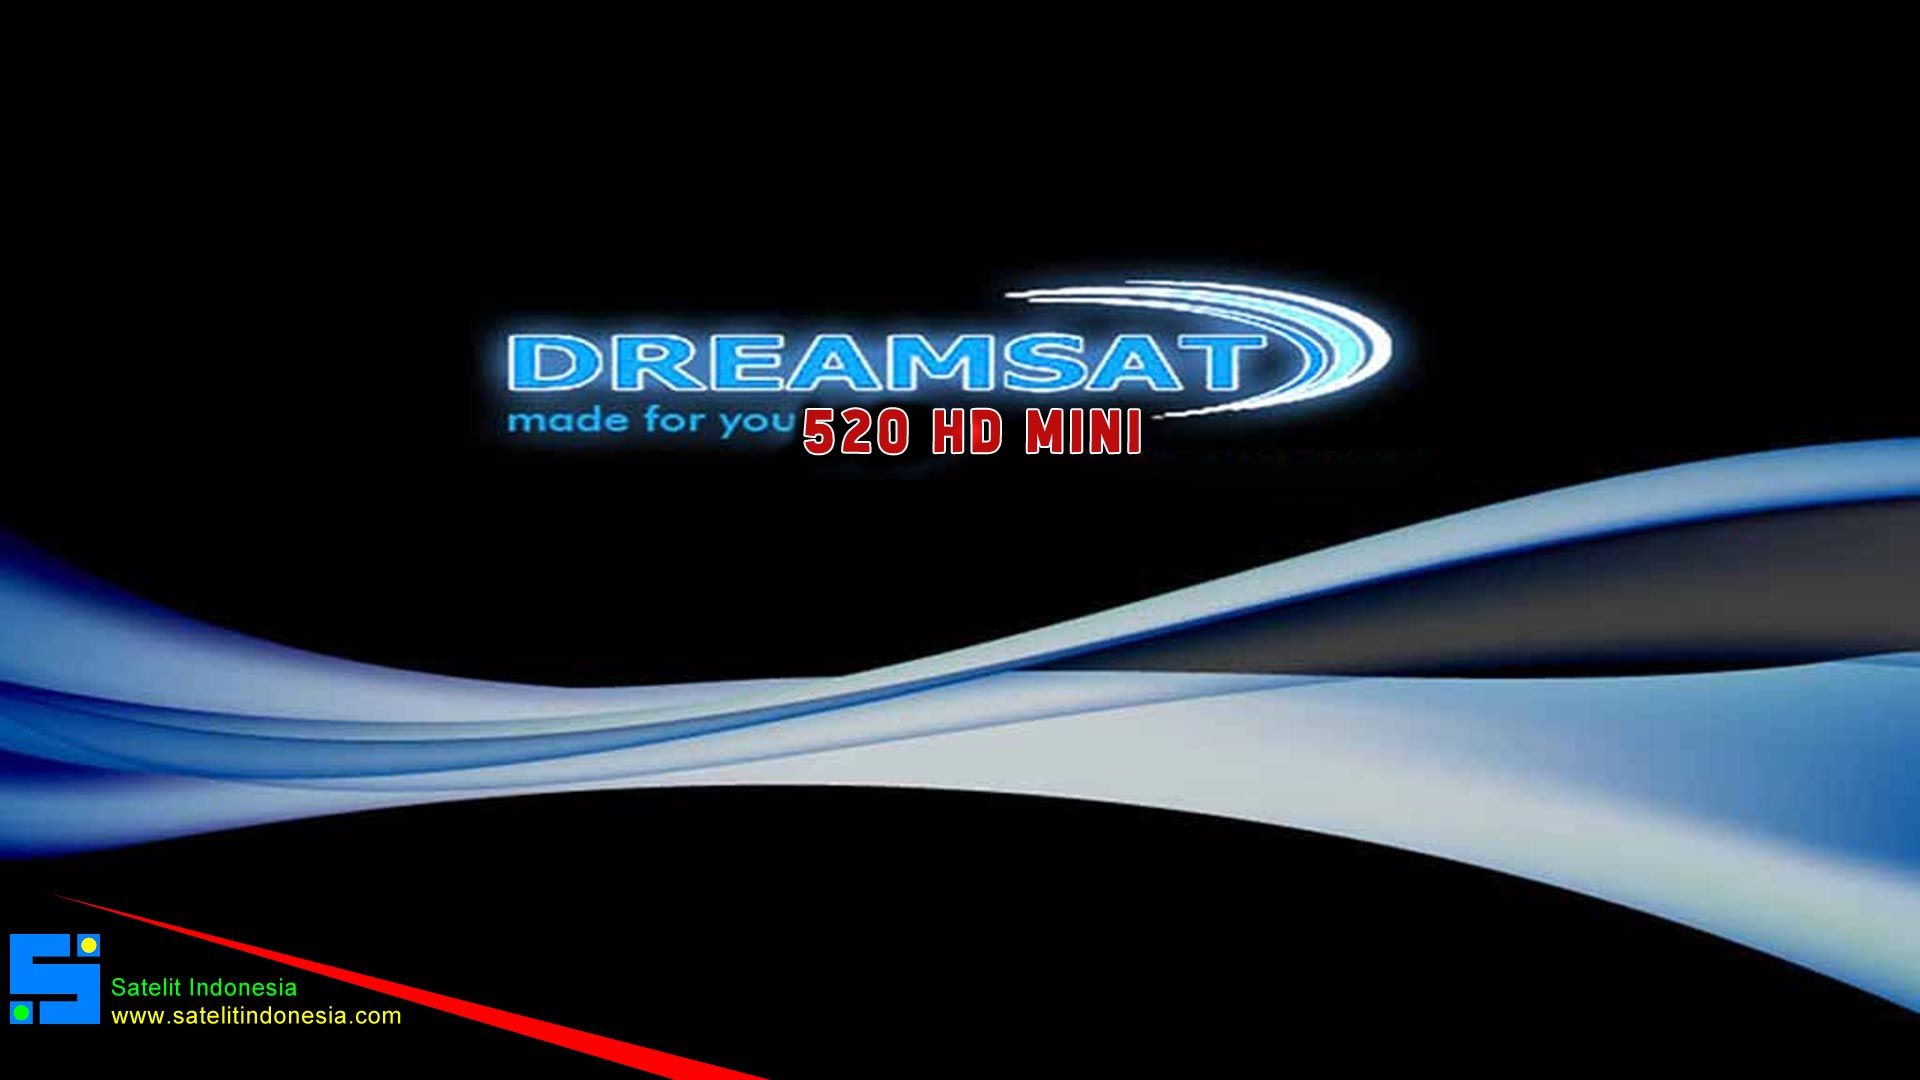 Download Software Dreamsat 520 HD Mini Update Firmware Receiver